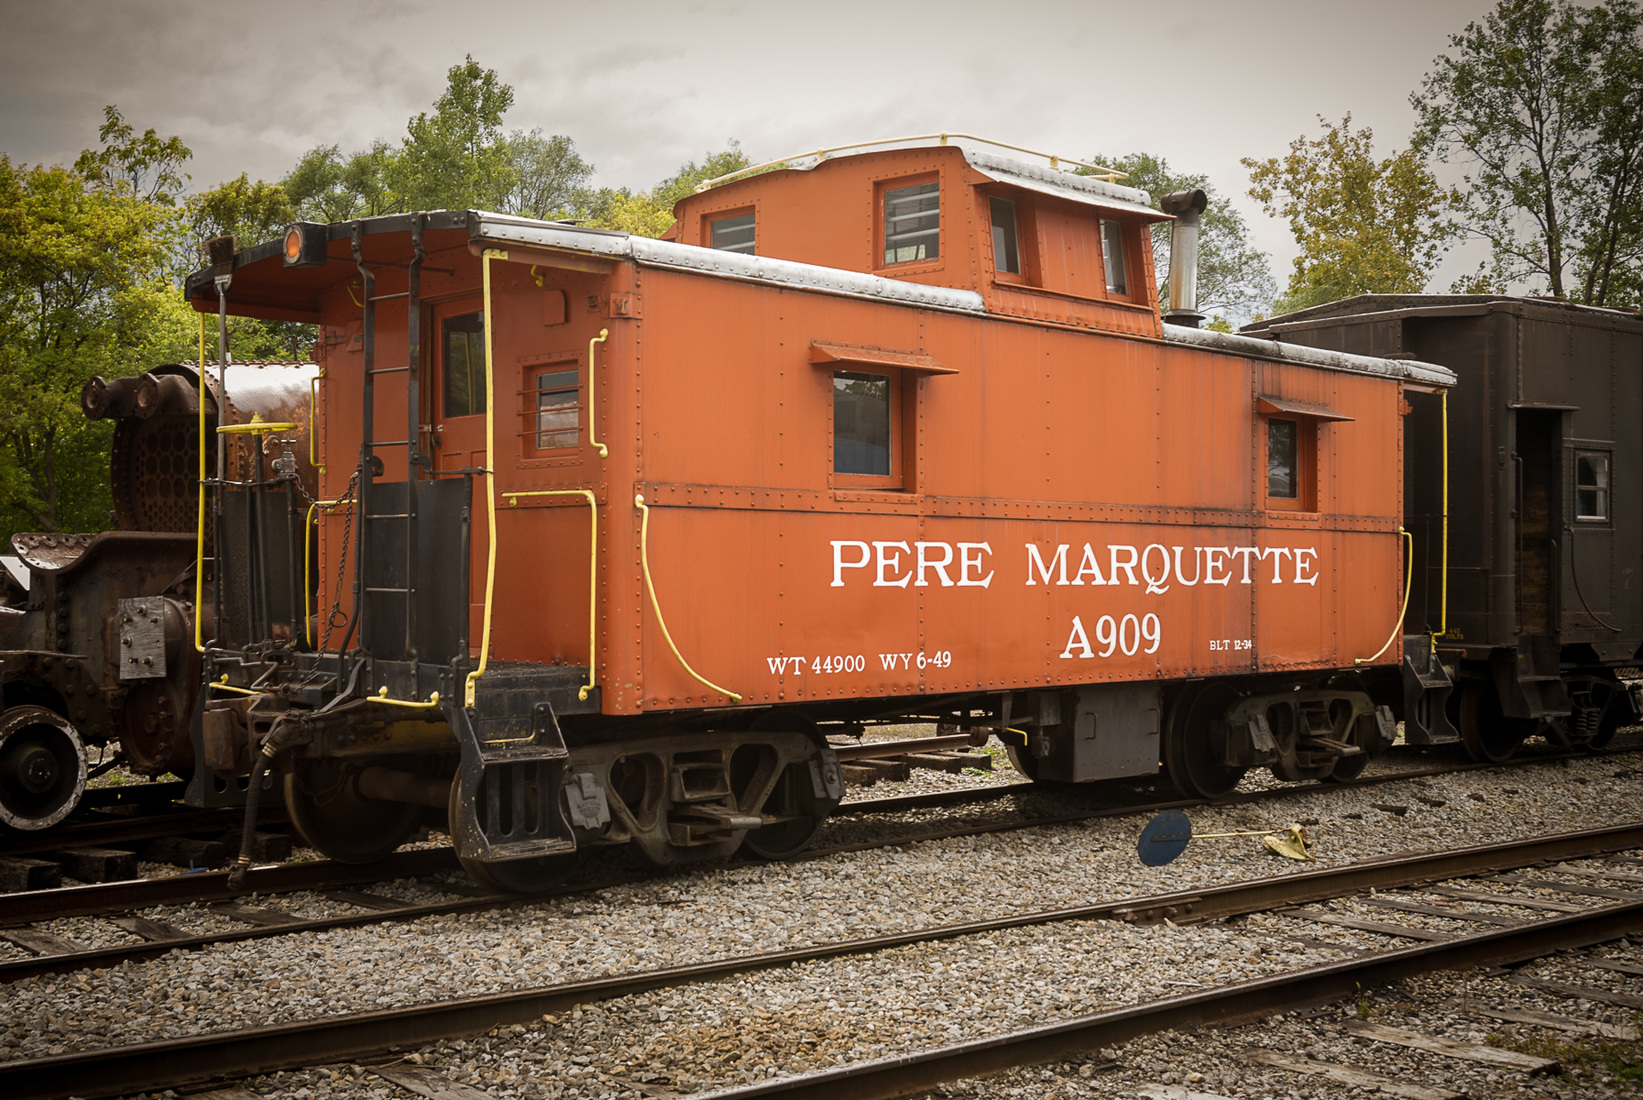 Iron, Steel and Steam PM A909 Caboose - Built December, 1934